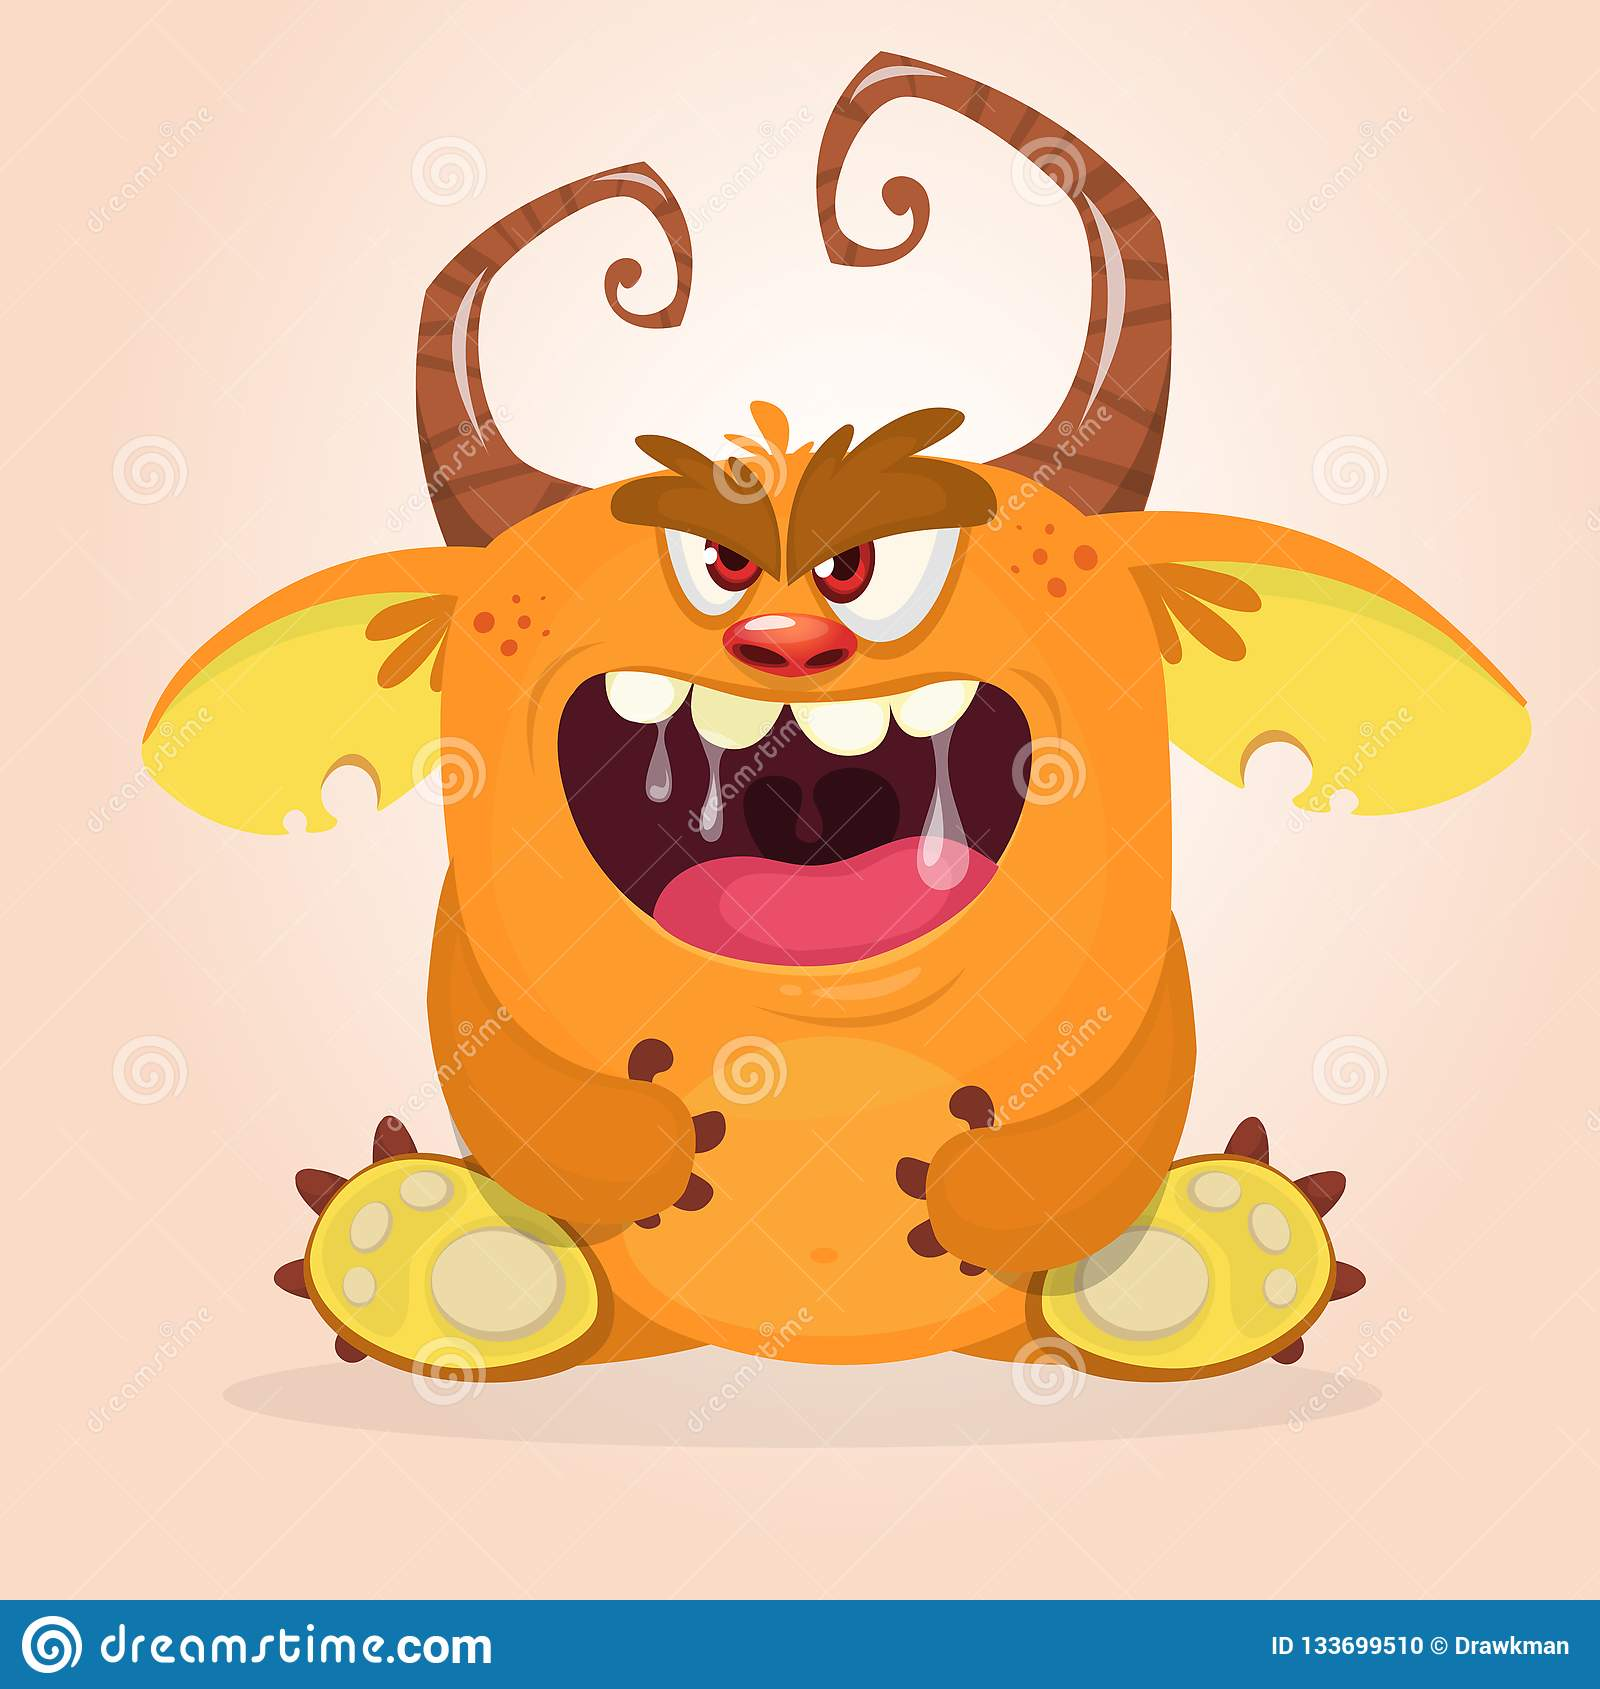 hight resolution of angry cartoon monster sitting halloween vector horned monster clipart illustration